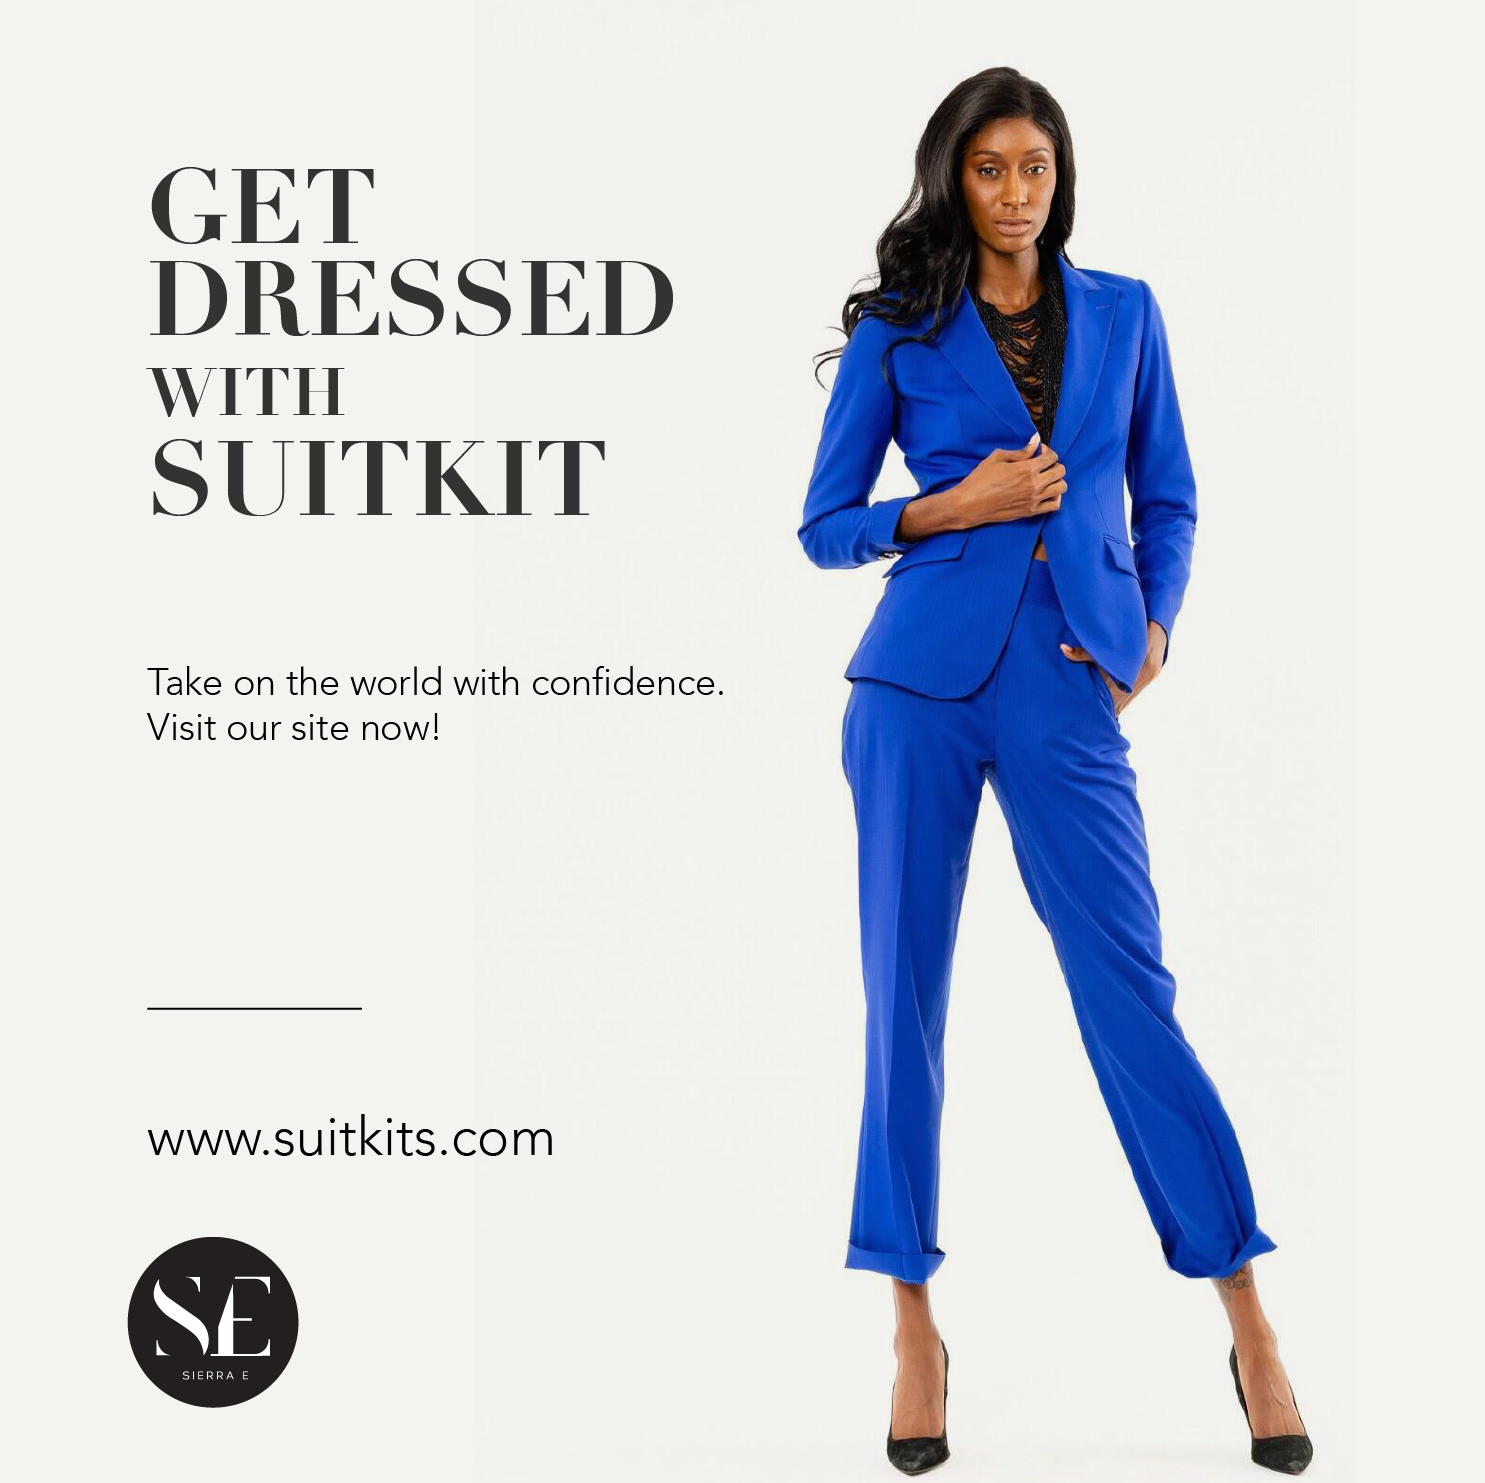 Suitkits-media-v2-06.png